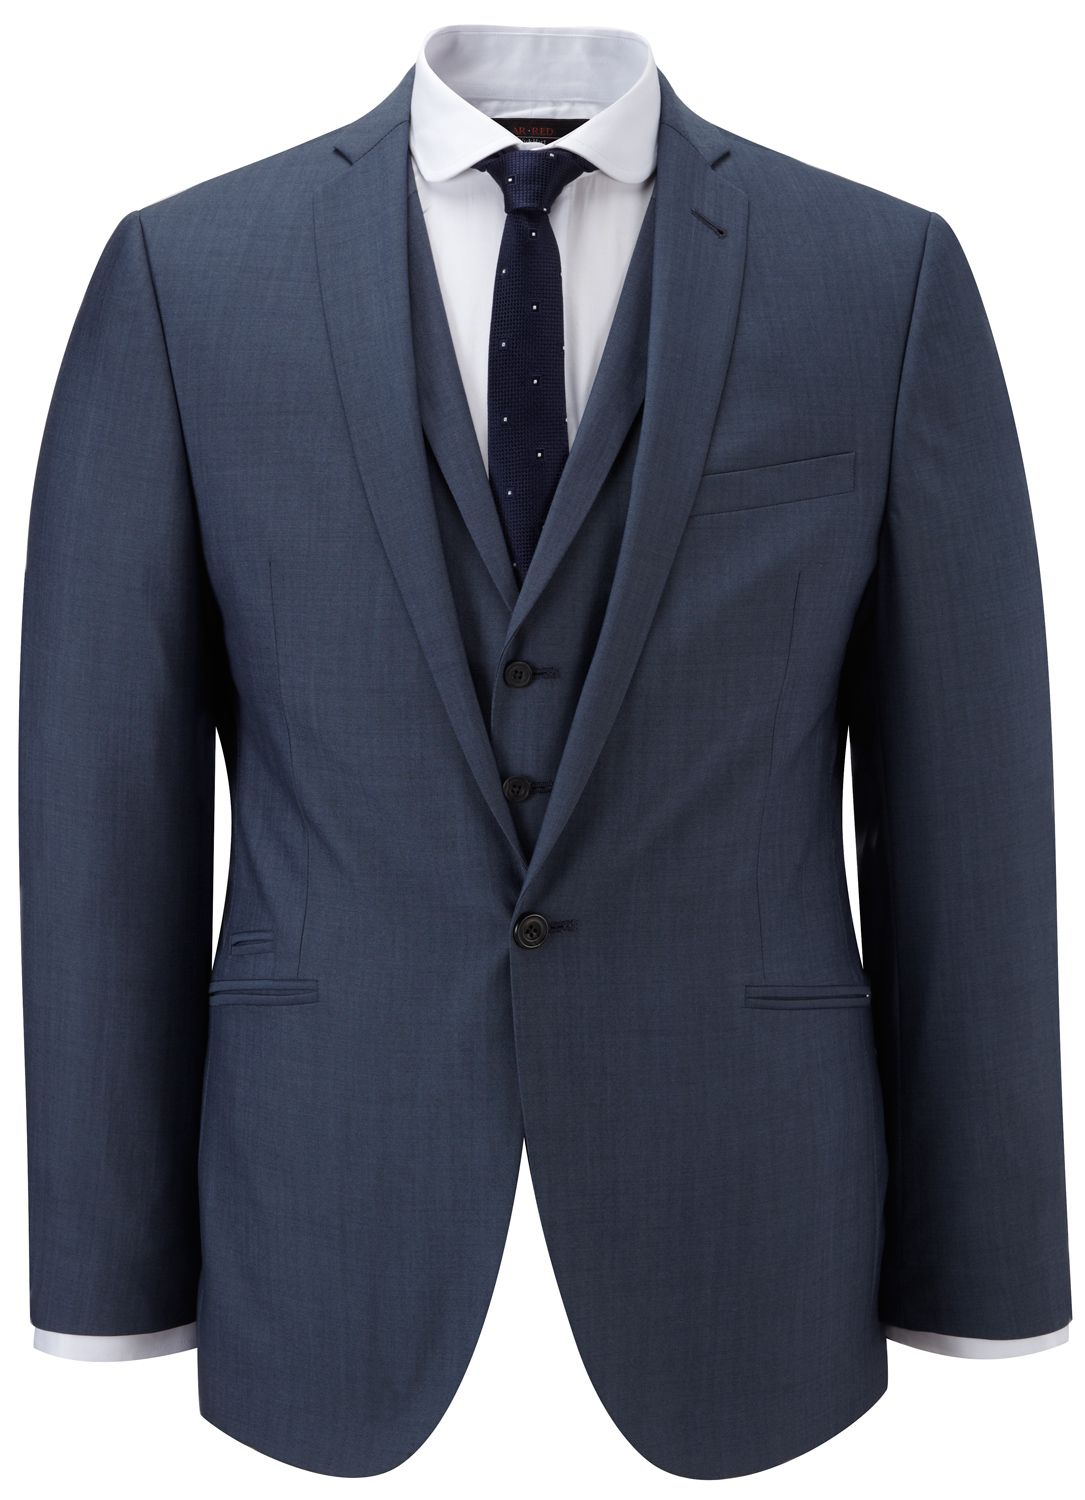 Austin Reed Category List Navy Blue Suit Wedding Blue Suit Wedding Navy Blue Wedding